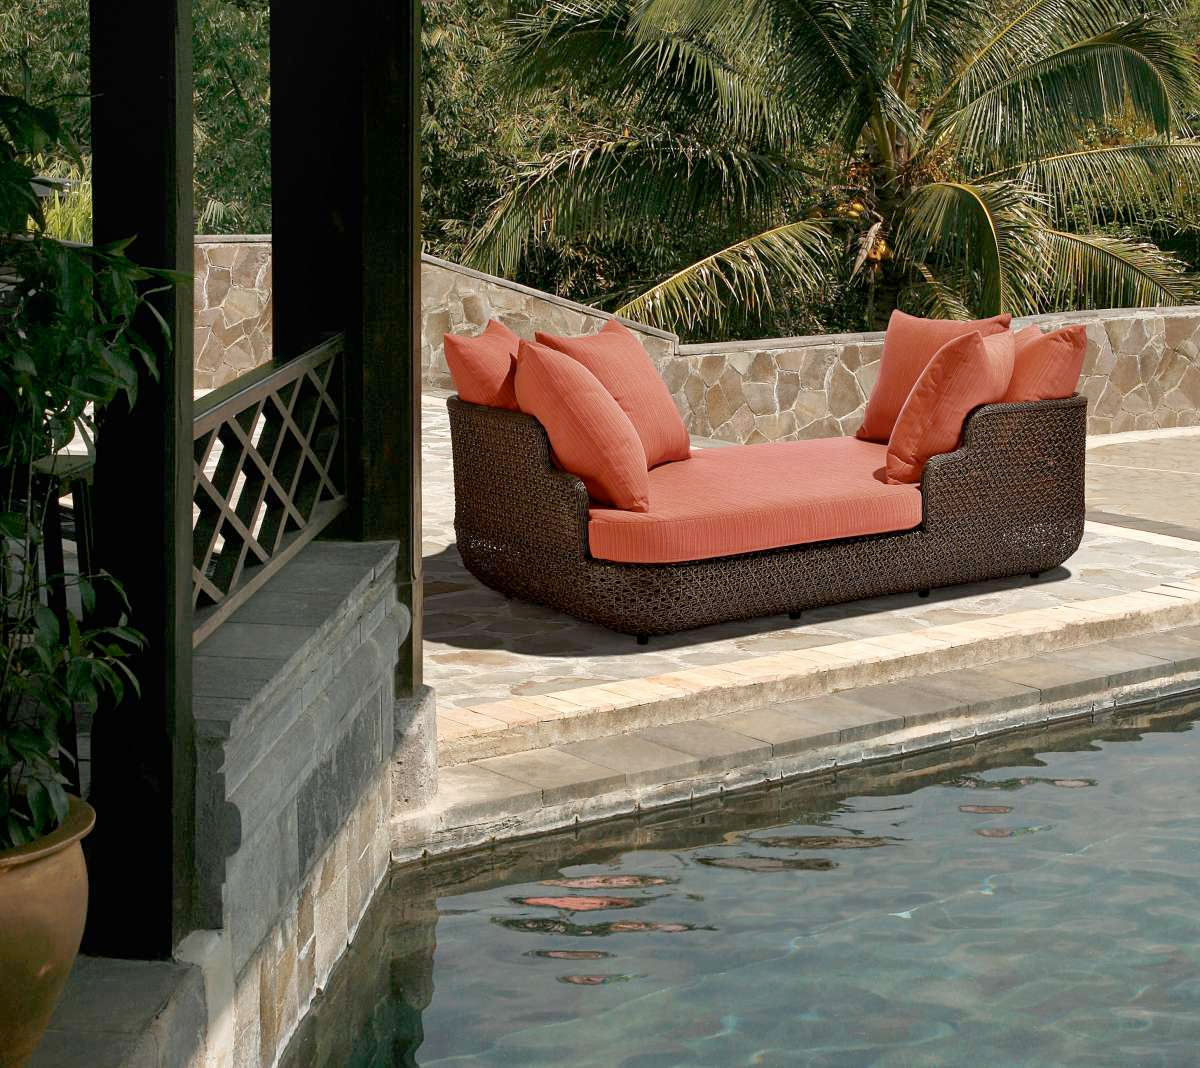 Barlow Tyrie Kirar daybed